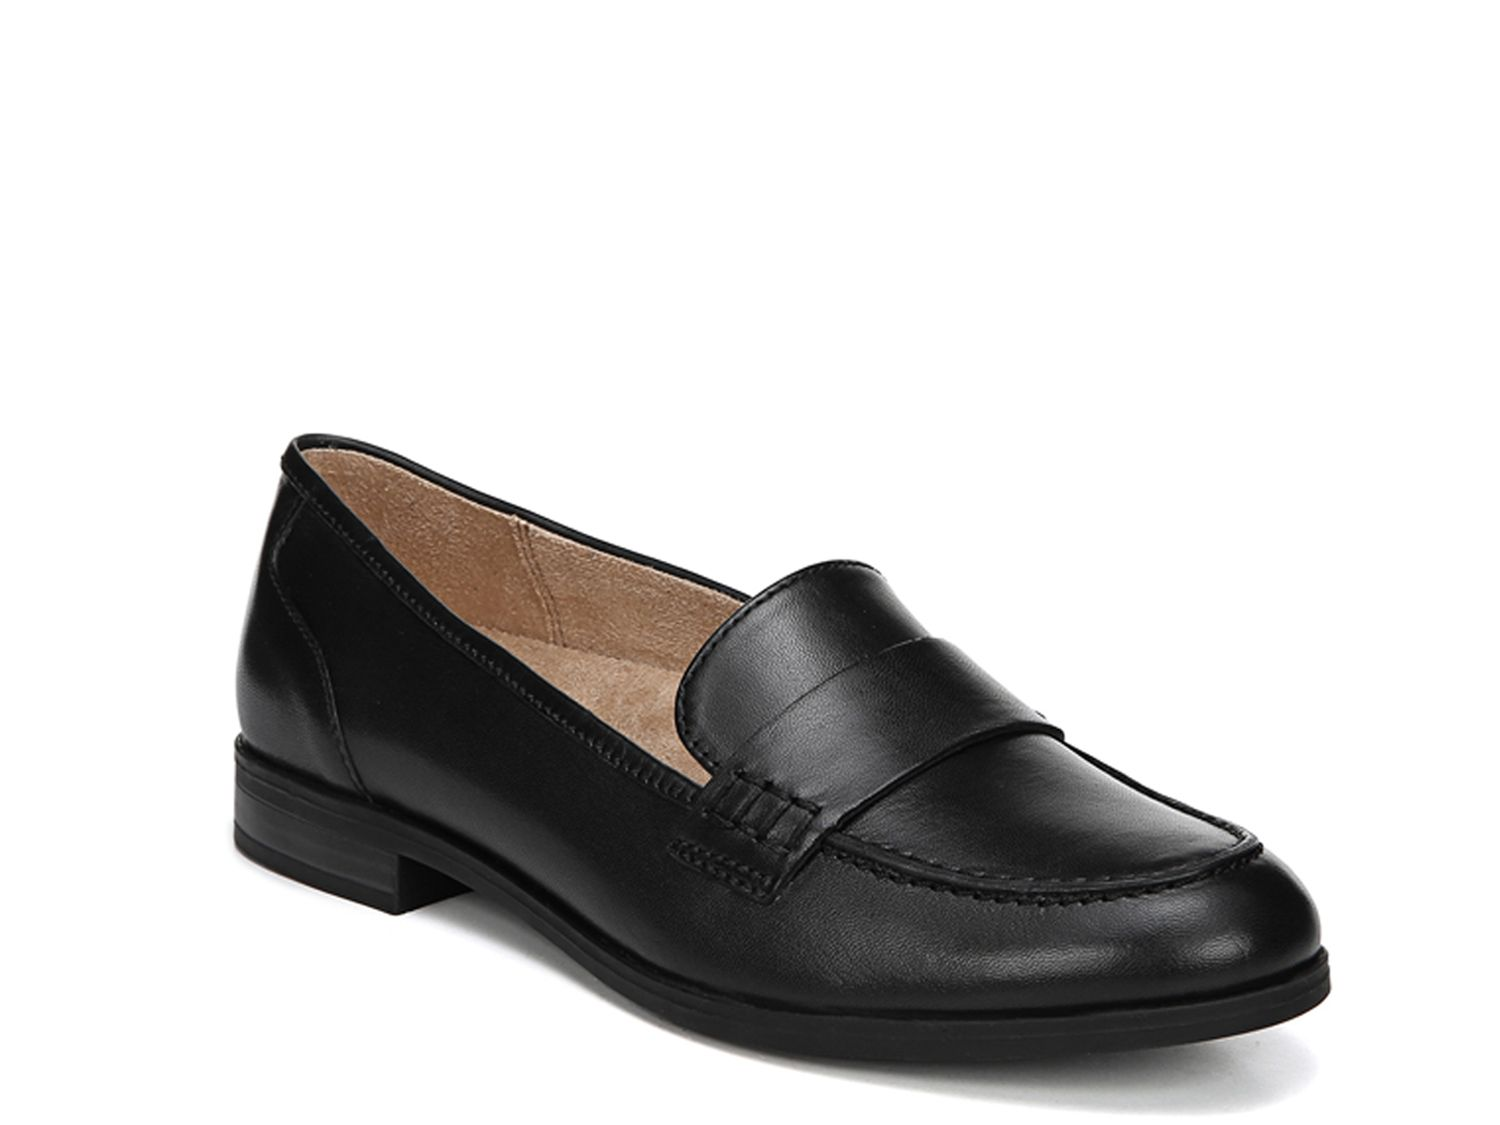 Naturalizer Milo Penny Loafer In 2021 Loafers Casual Shoes Women Penny Loafers [ 1125 x 1500 Pixel ]